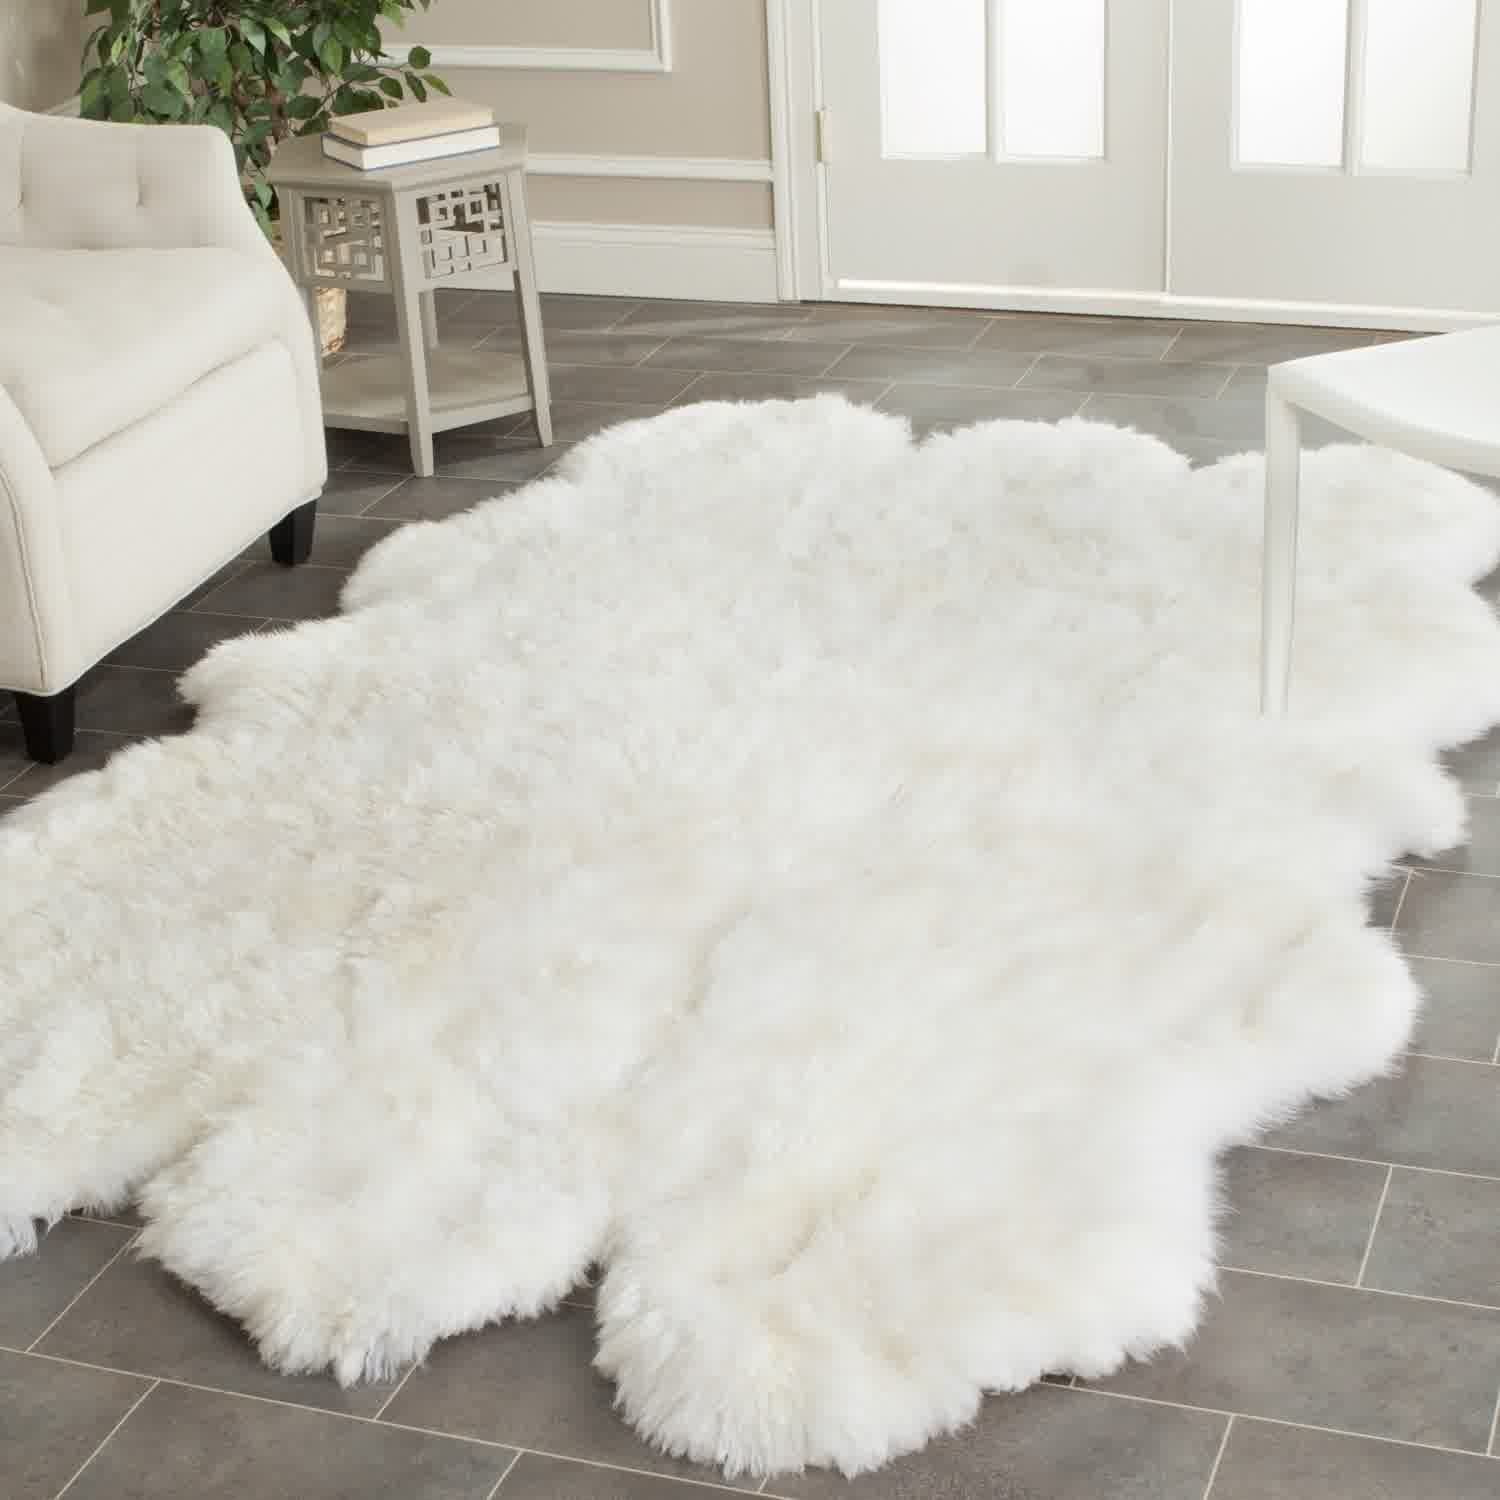 Schaffell Teppich Fluffy White Rug: A Small Floor Feature For Ultimate